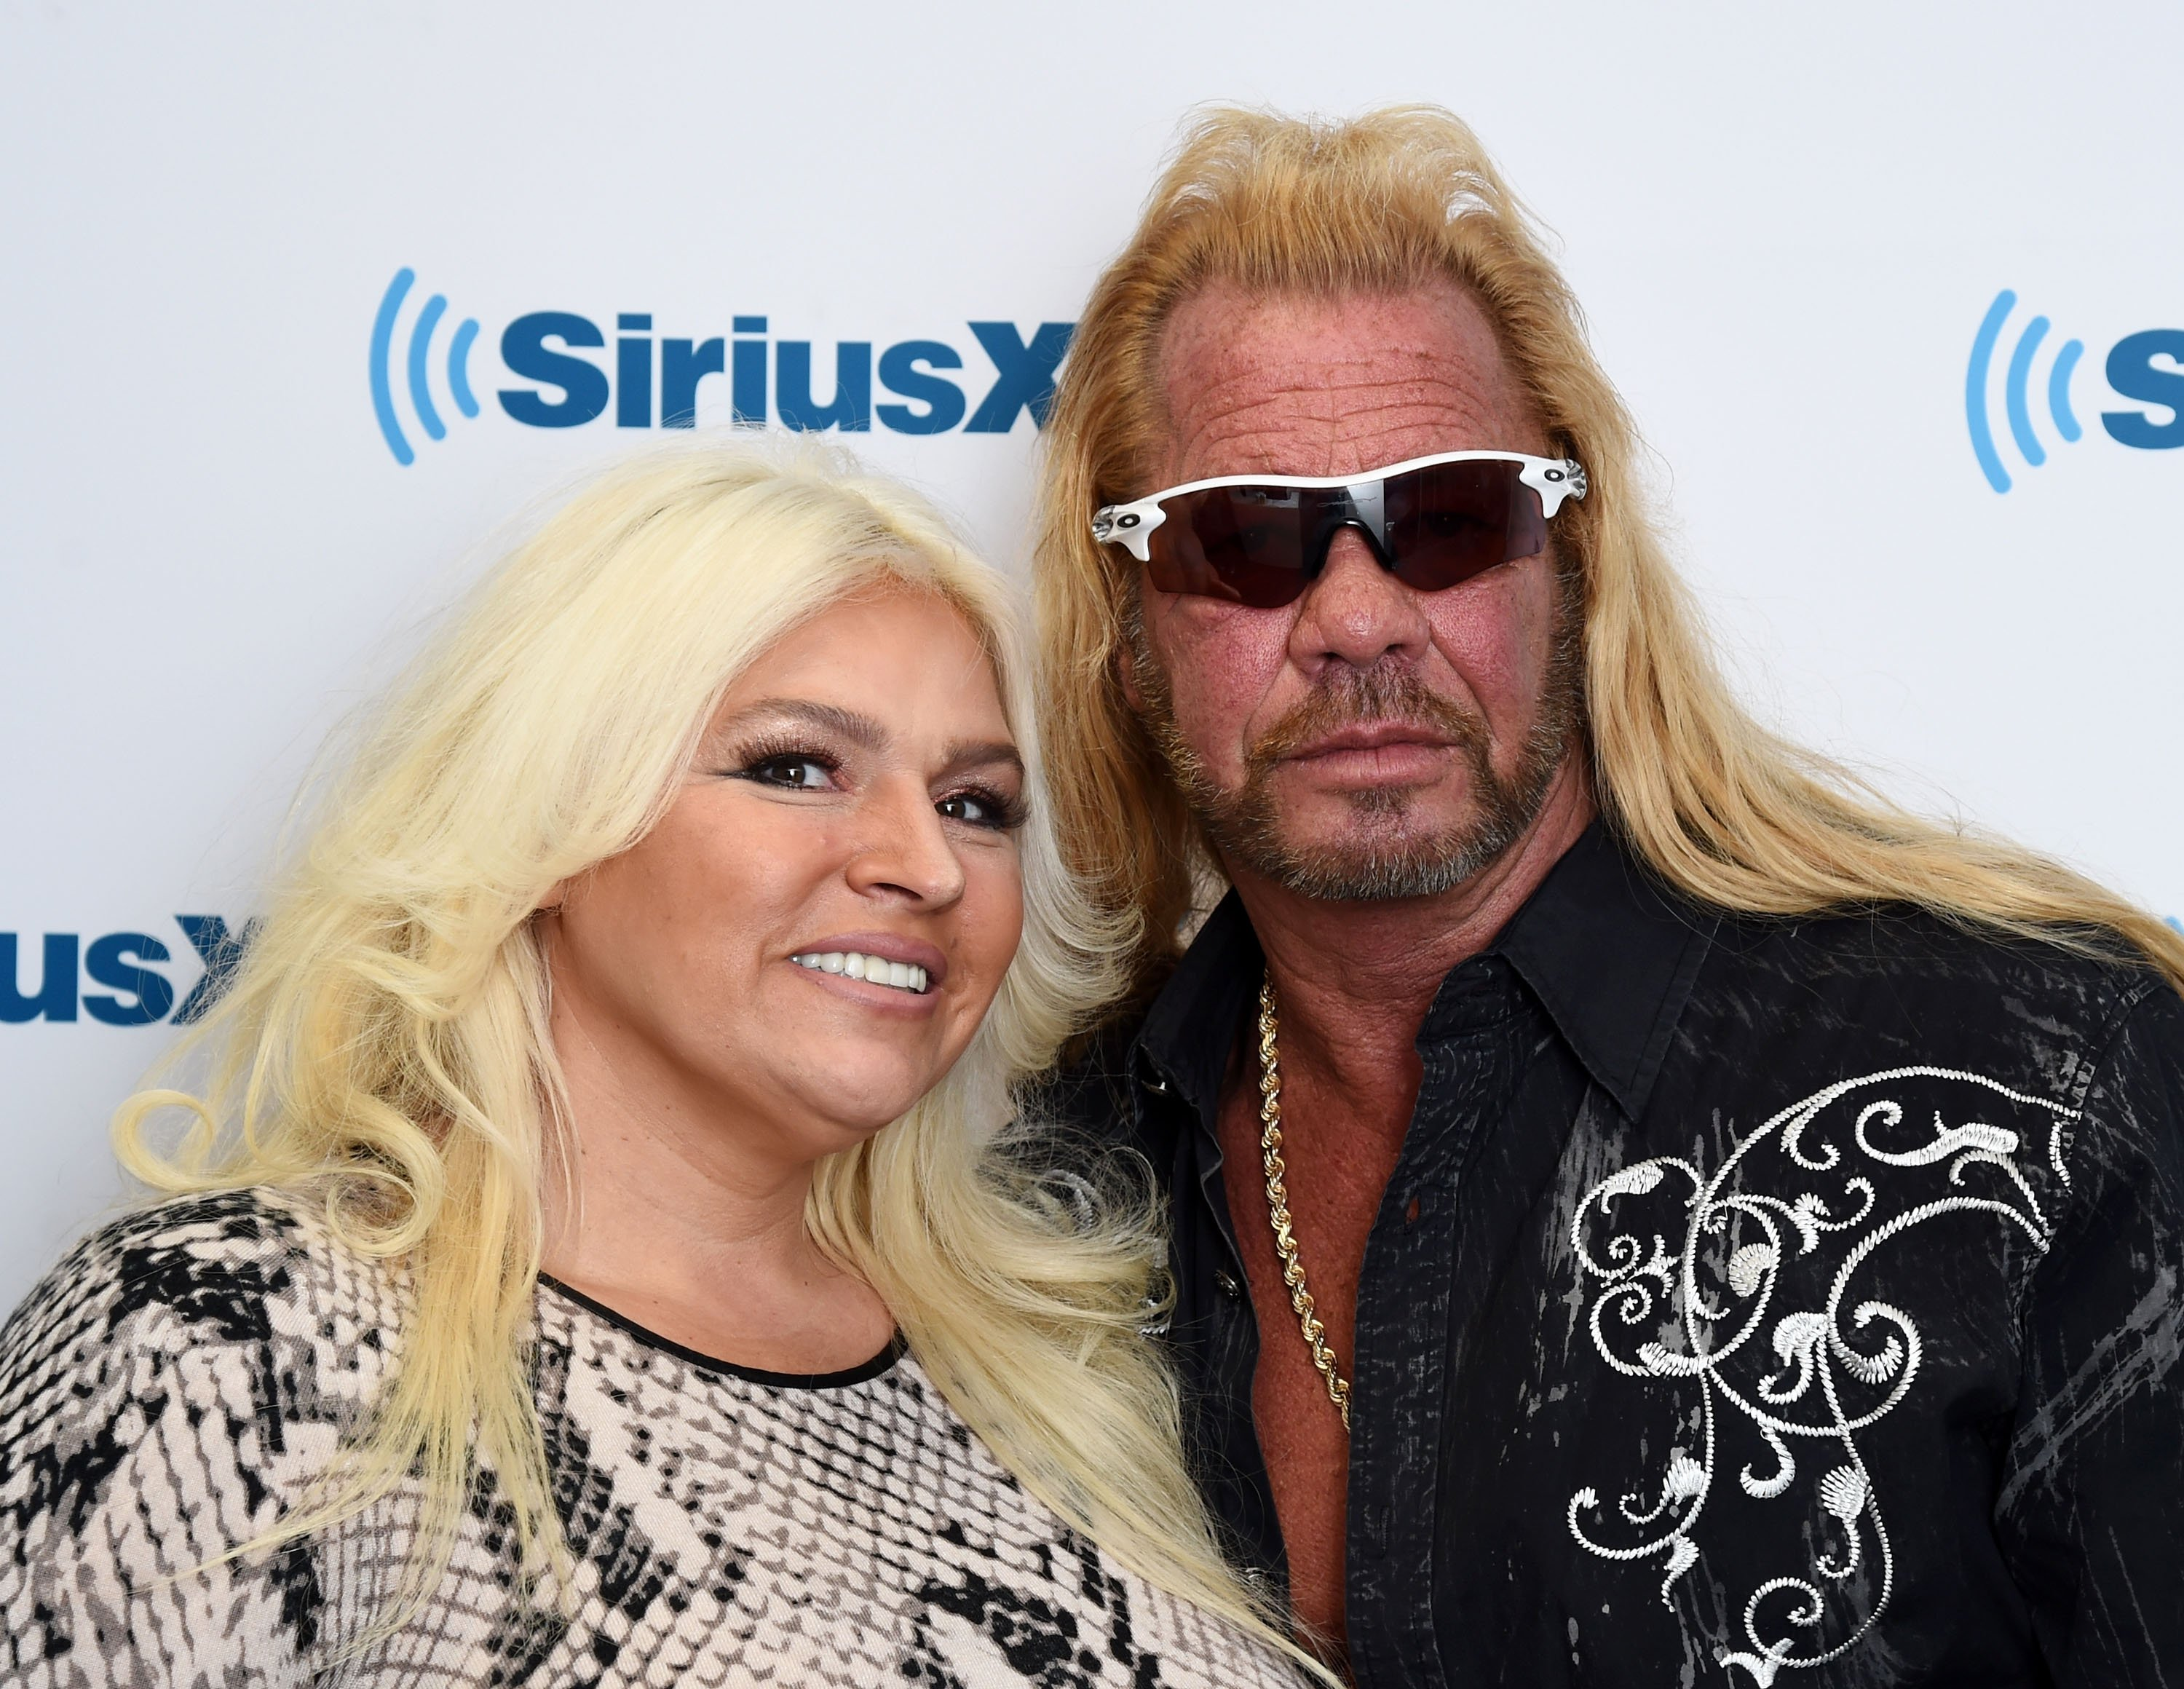 Beth Chapman and Dog the Bounty Hunter, Duane Chapman visits the SiriusXM Studios on April 24, 2015, in New York City. | Source: Getty Images.